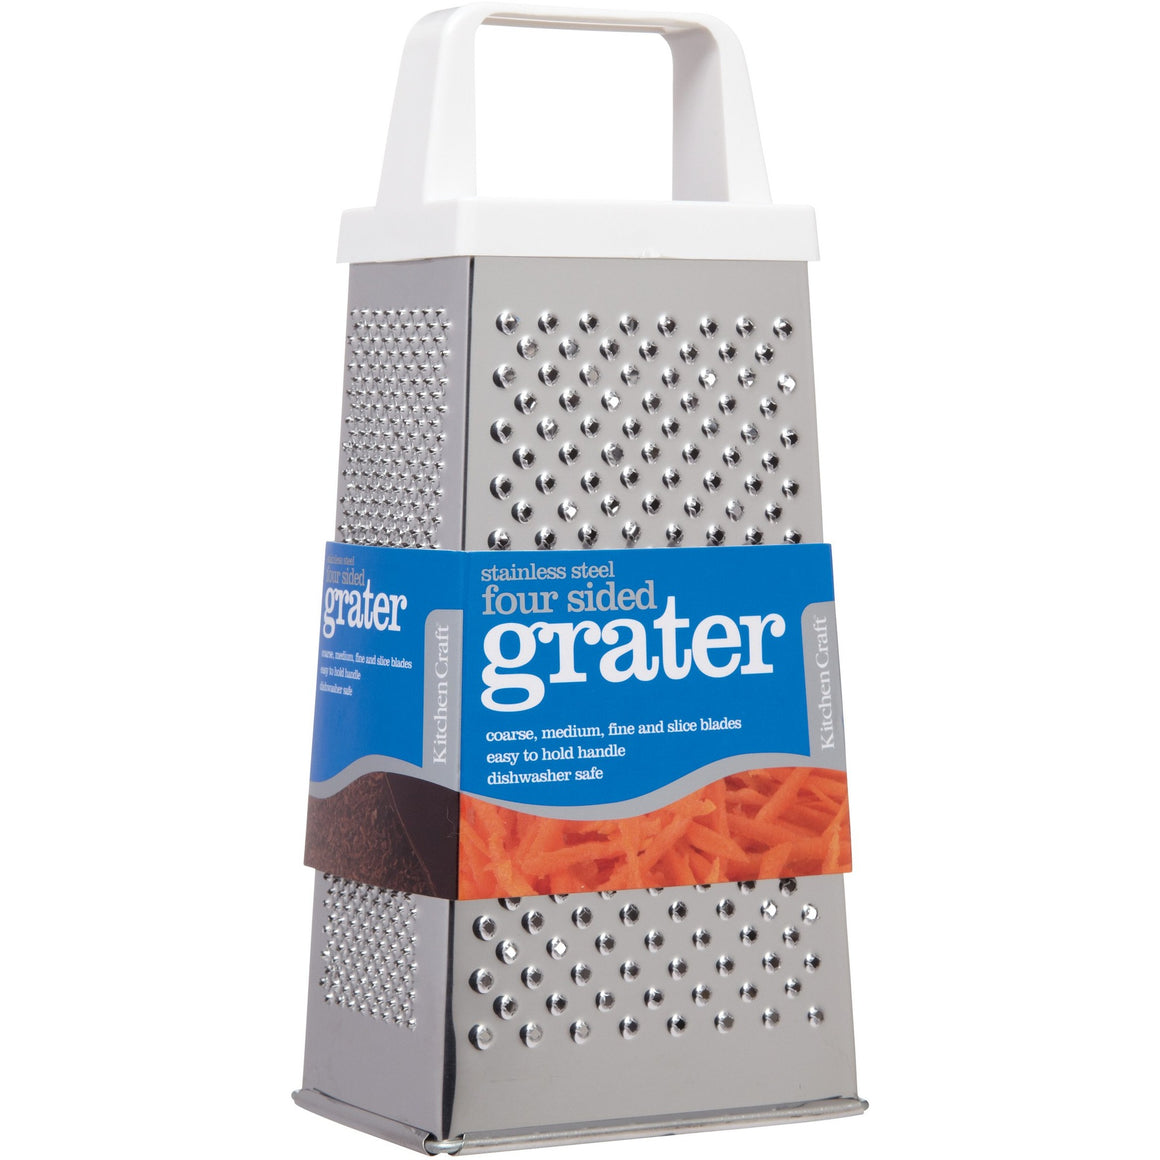 Kitchen Craft White Handle Grater